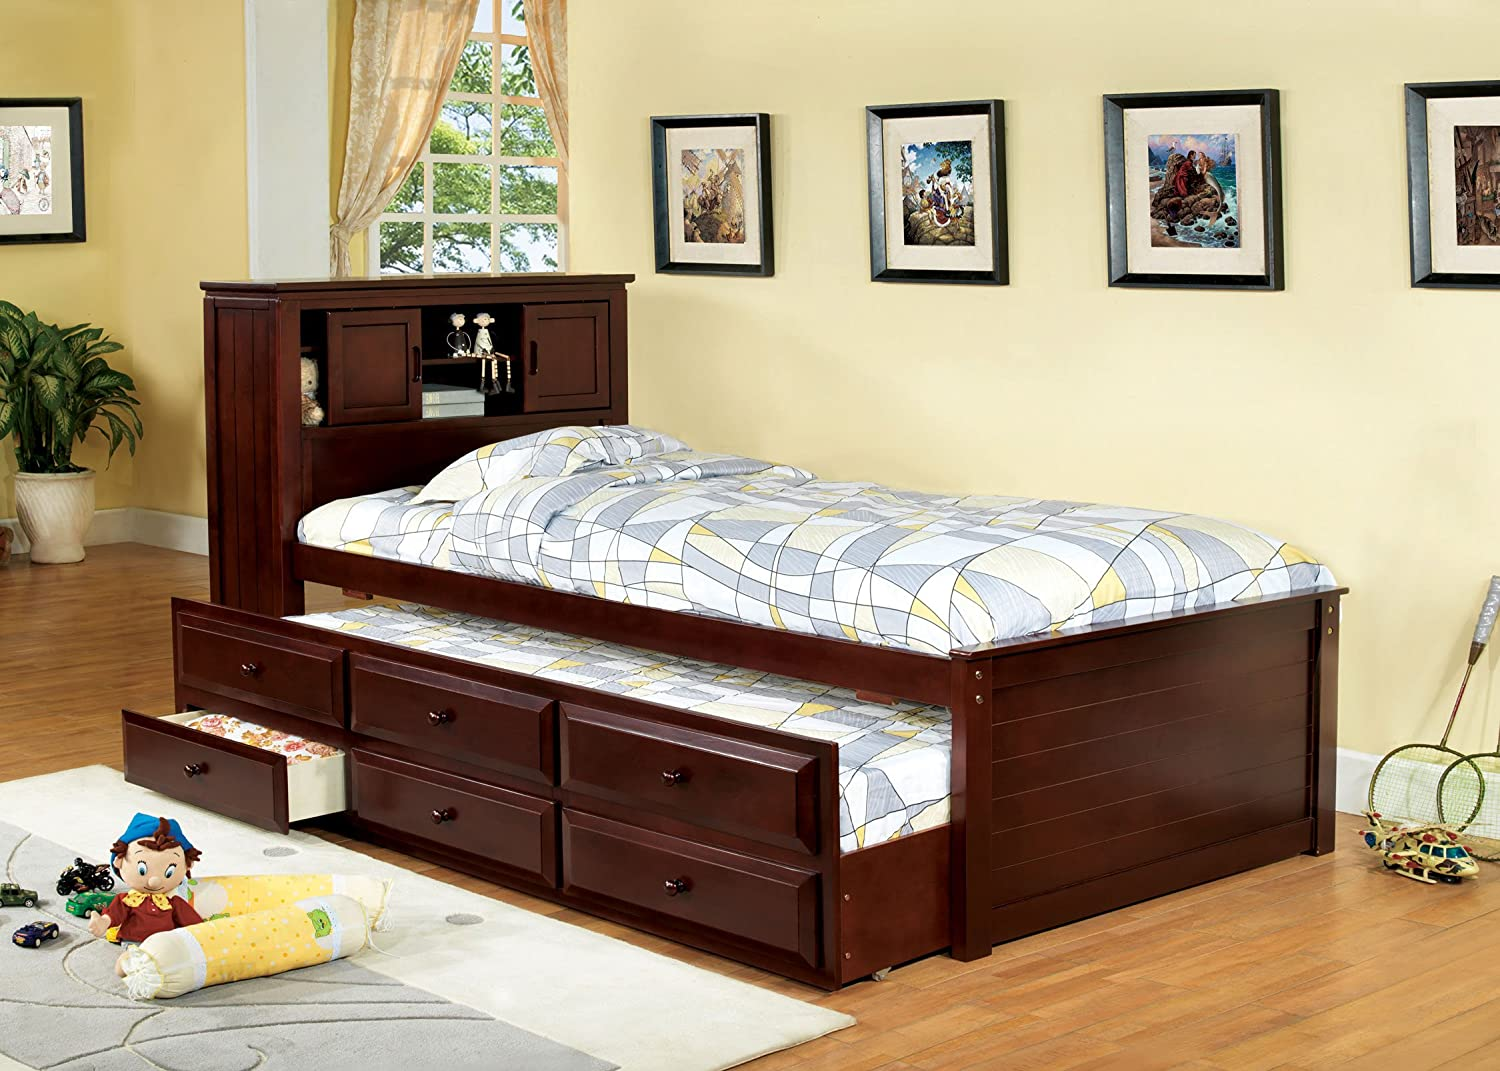 Amazon.com: Furniture of America Cameron Twin Captain Bed with ...